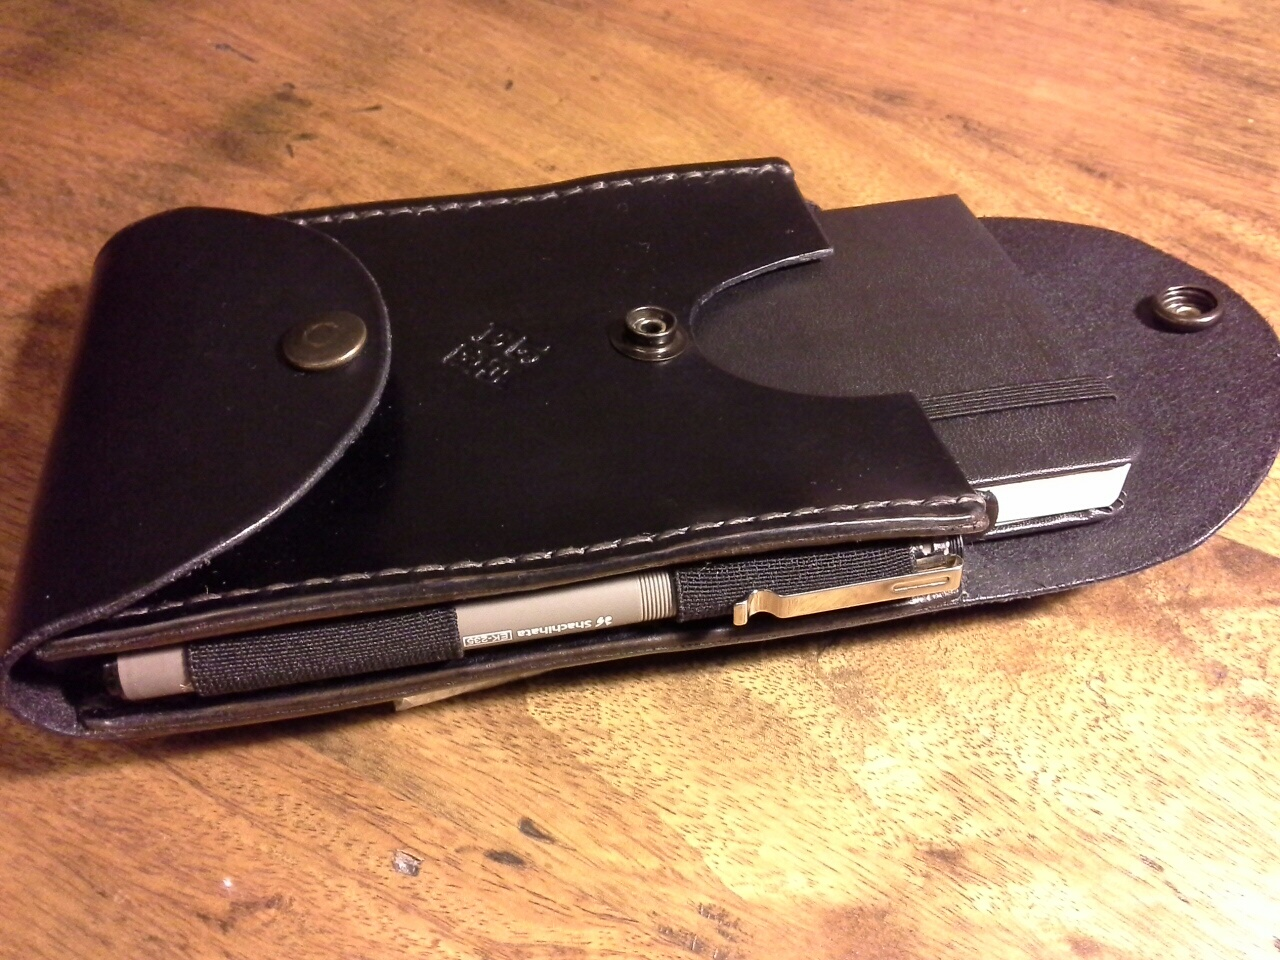 How to make a leather belt case for a pocket Moleskine notebook - with penholder - or other similar stuff..